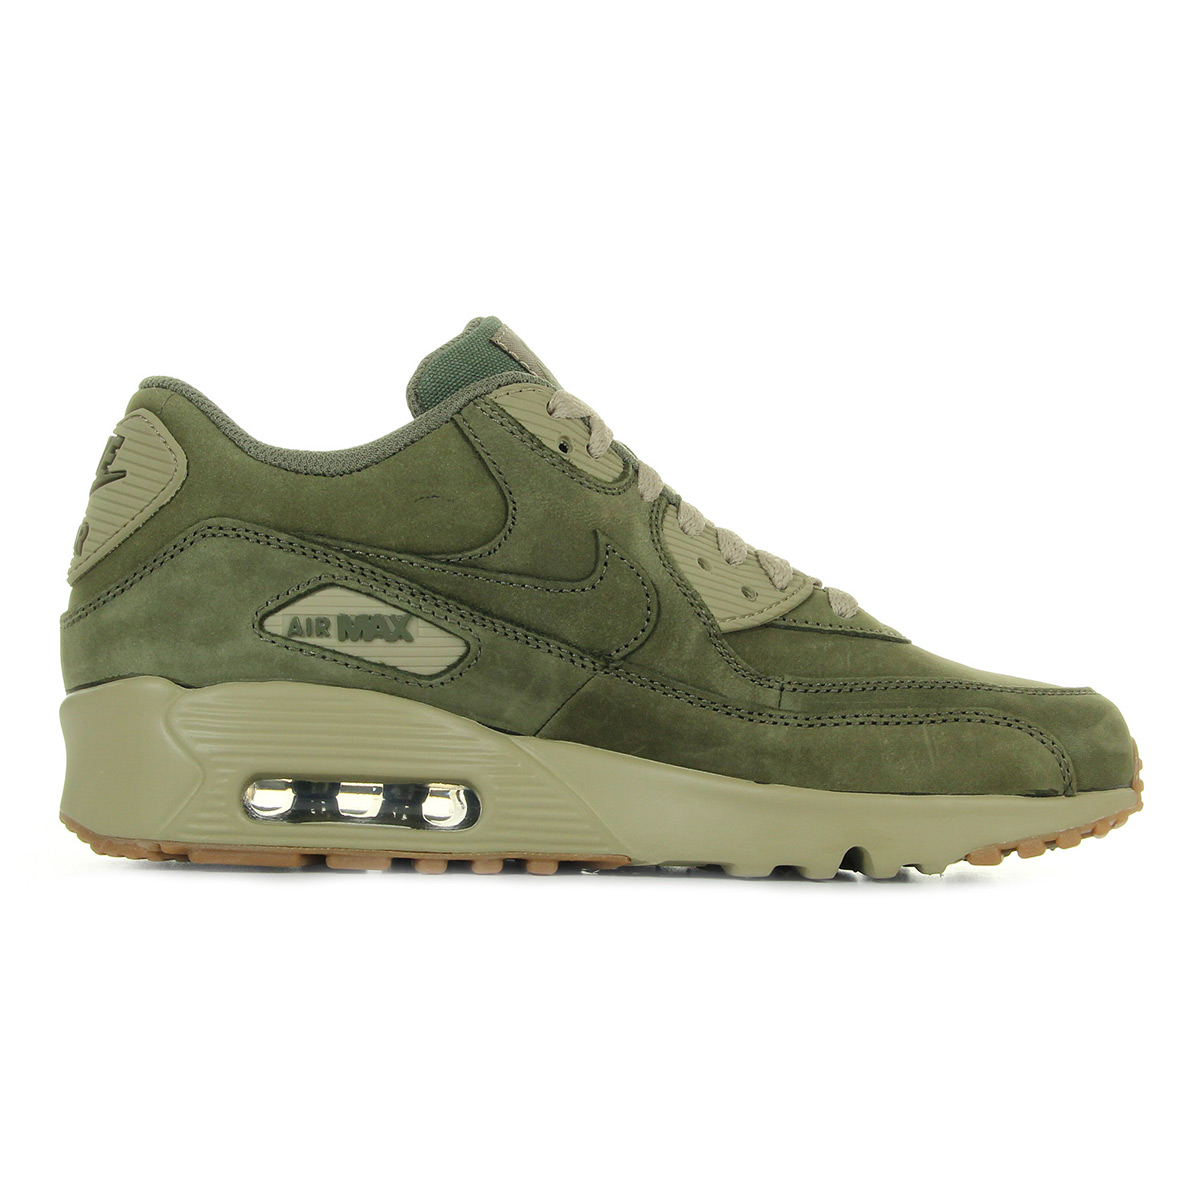 Nike Air Max 90 Winter Prm 943747200, Basket - 39 EU